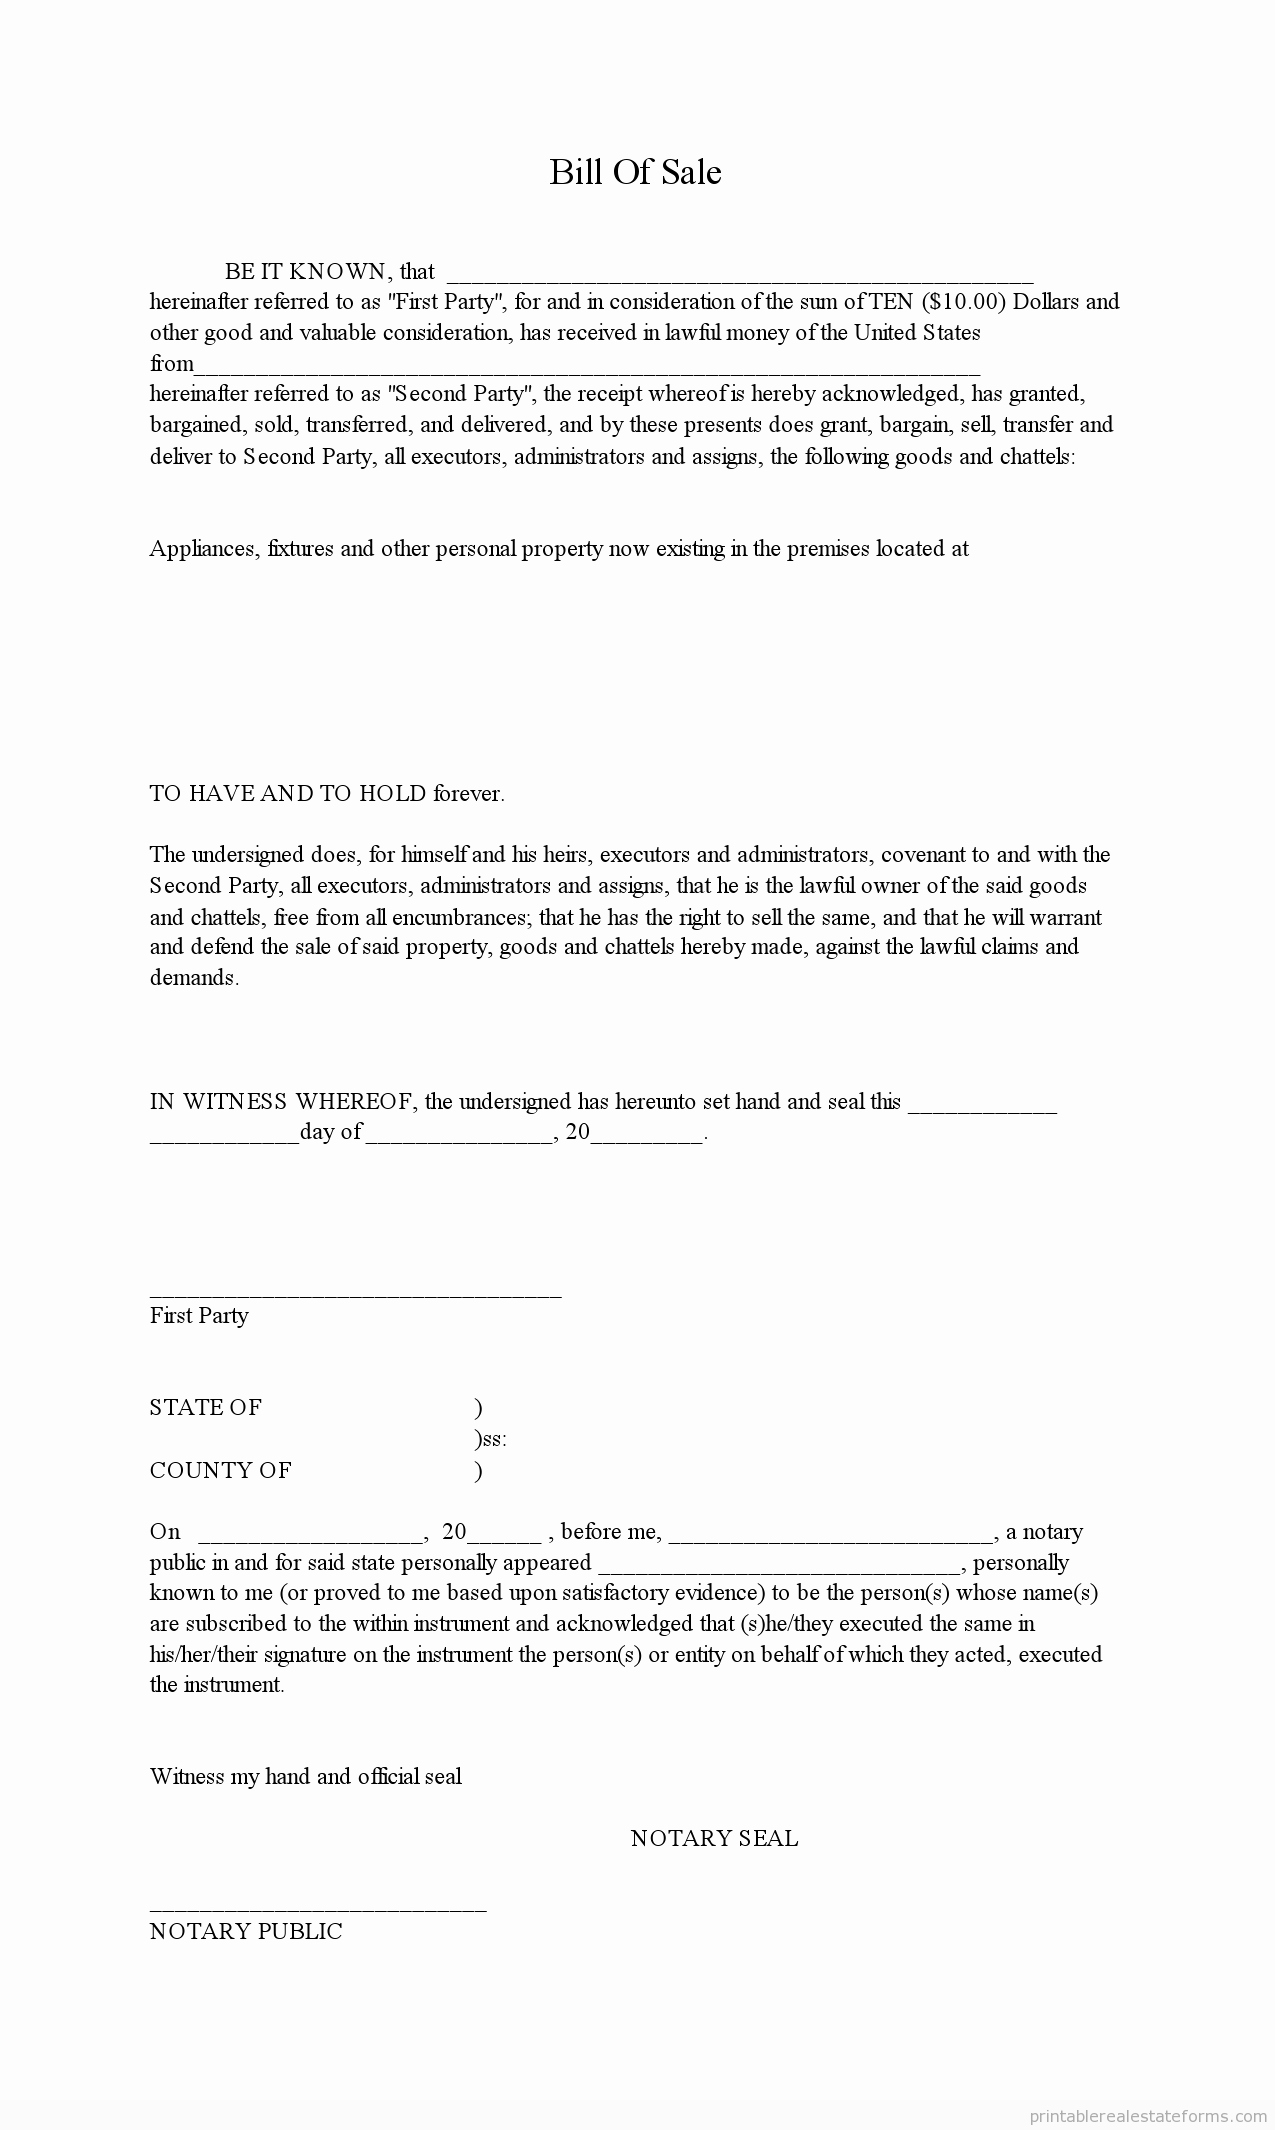 Free Bill Of Sale Printable Beautiful Free Bill Of Sale form Motorboat All Boats